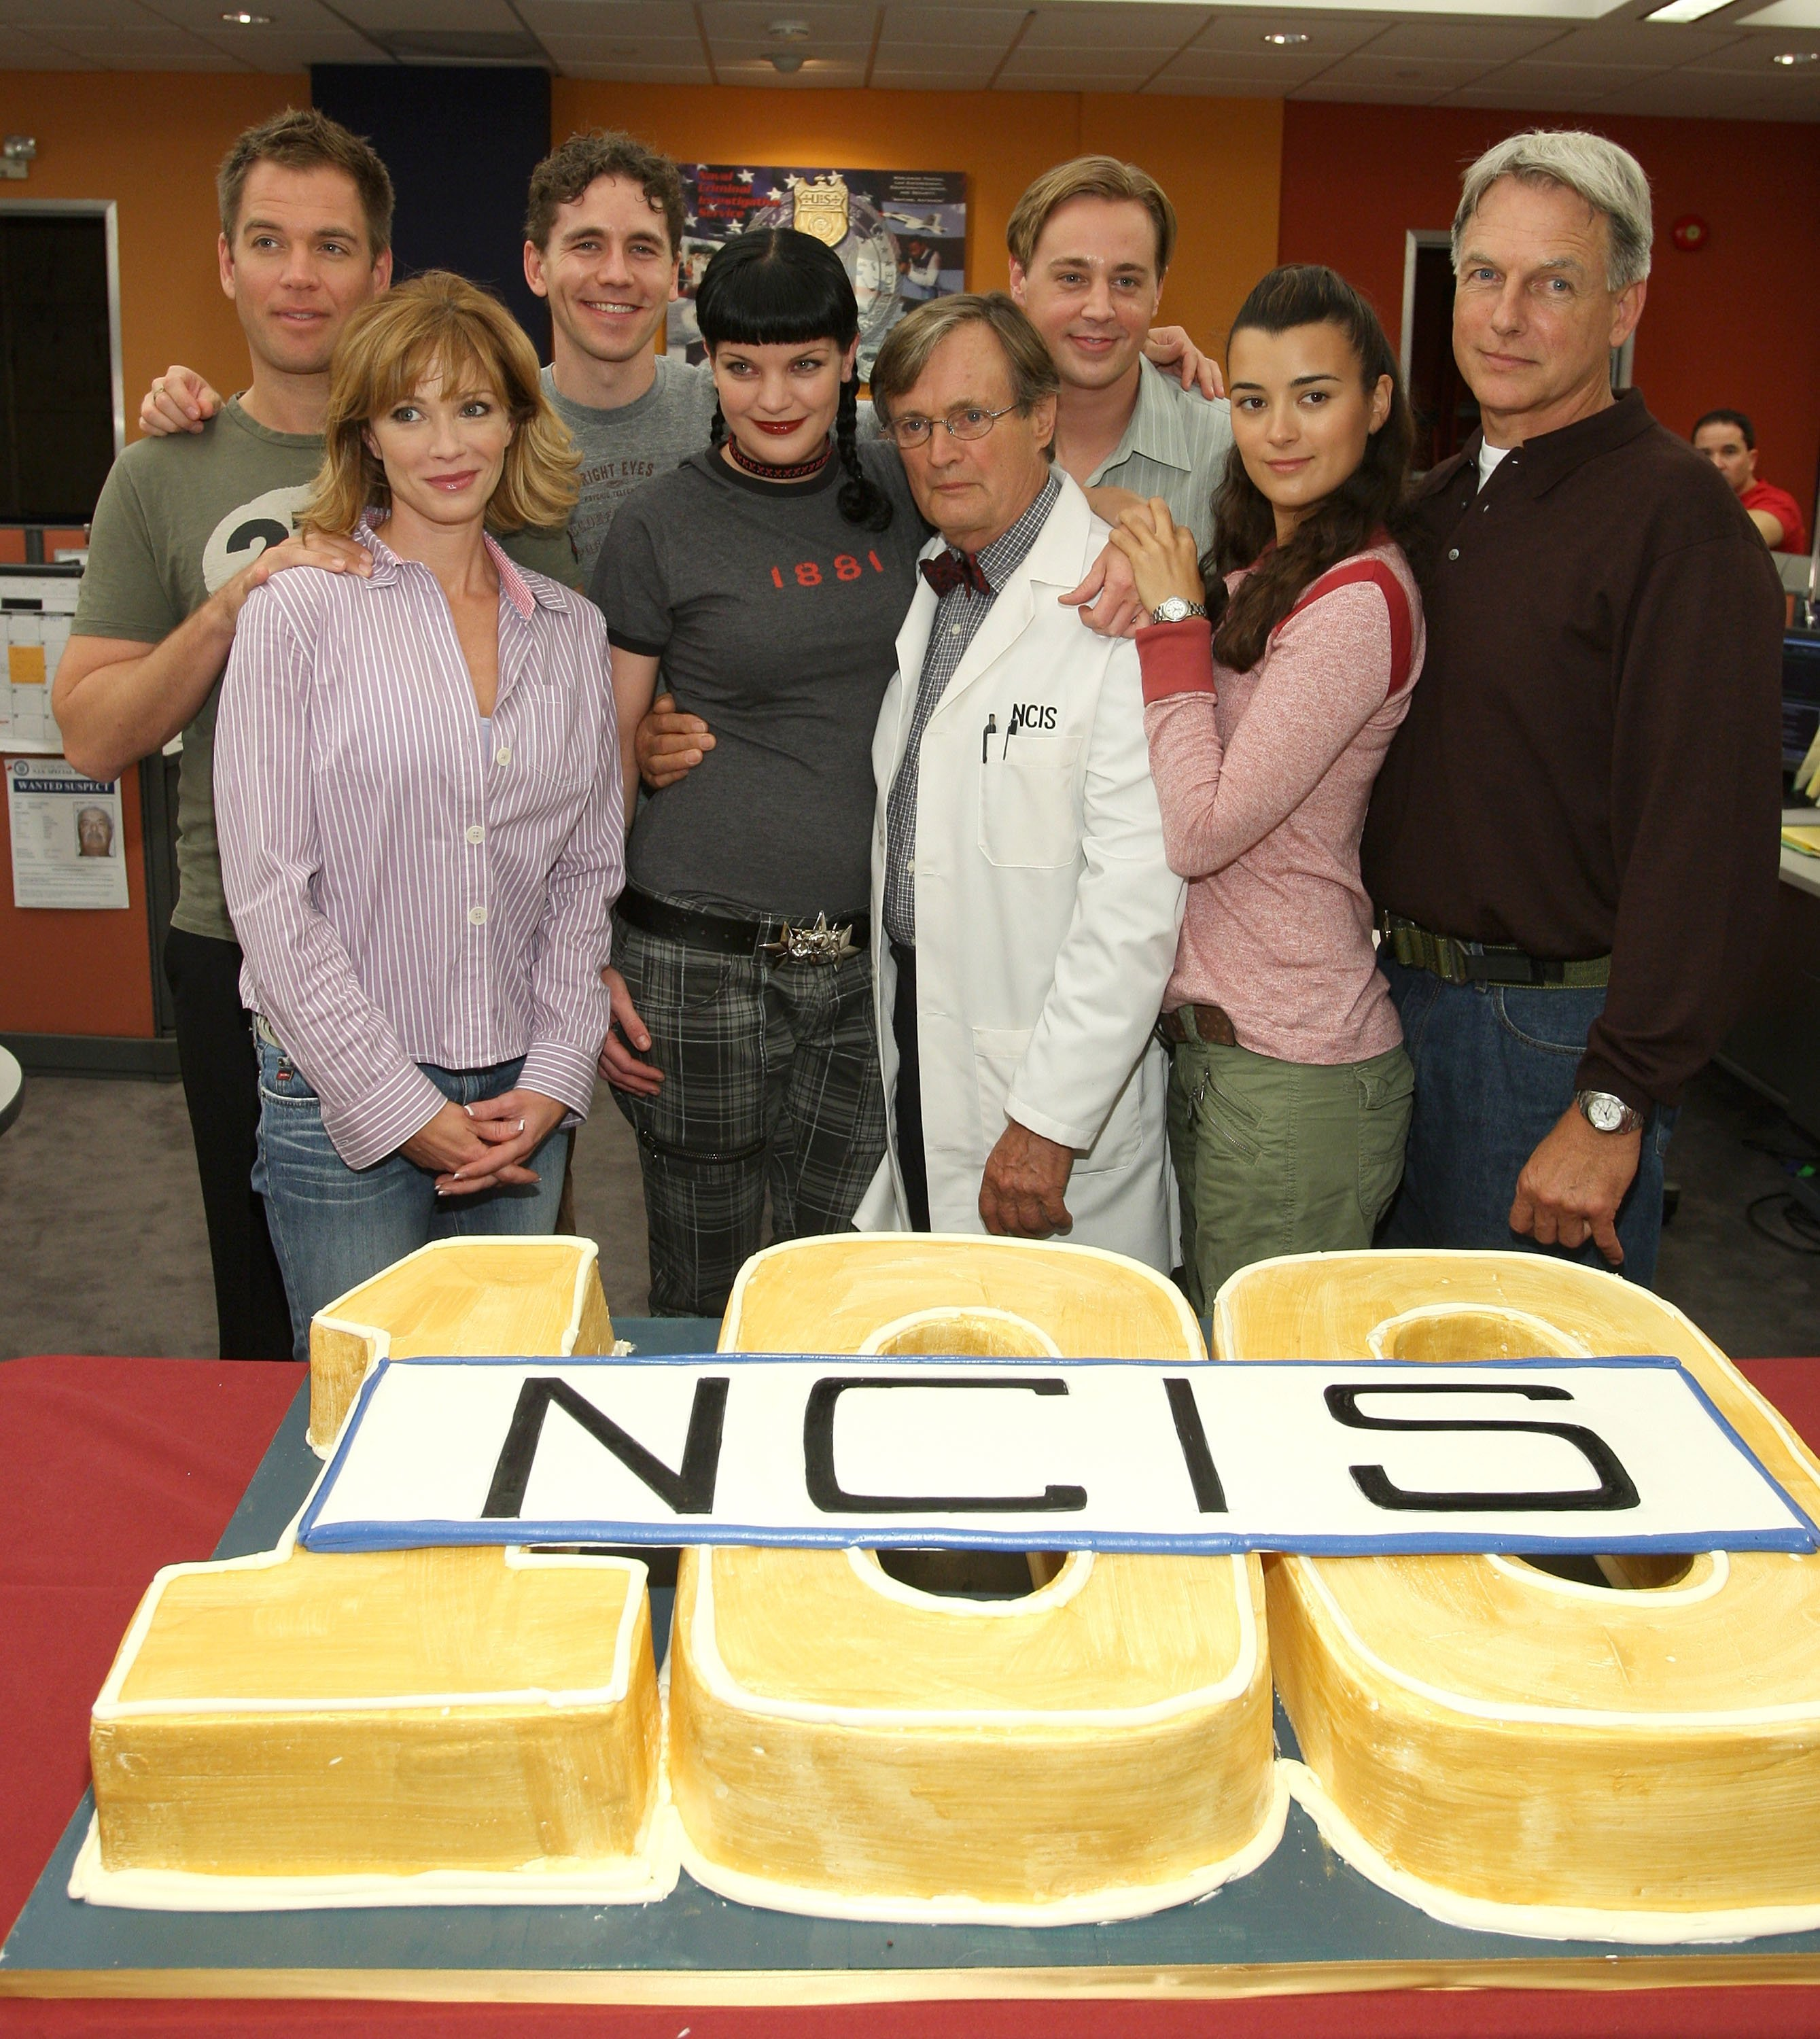 """The cast of """"NCIS"""" celebrating 100 episodes of the show with a large cake. 2007, California. 